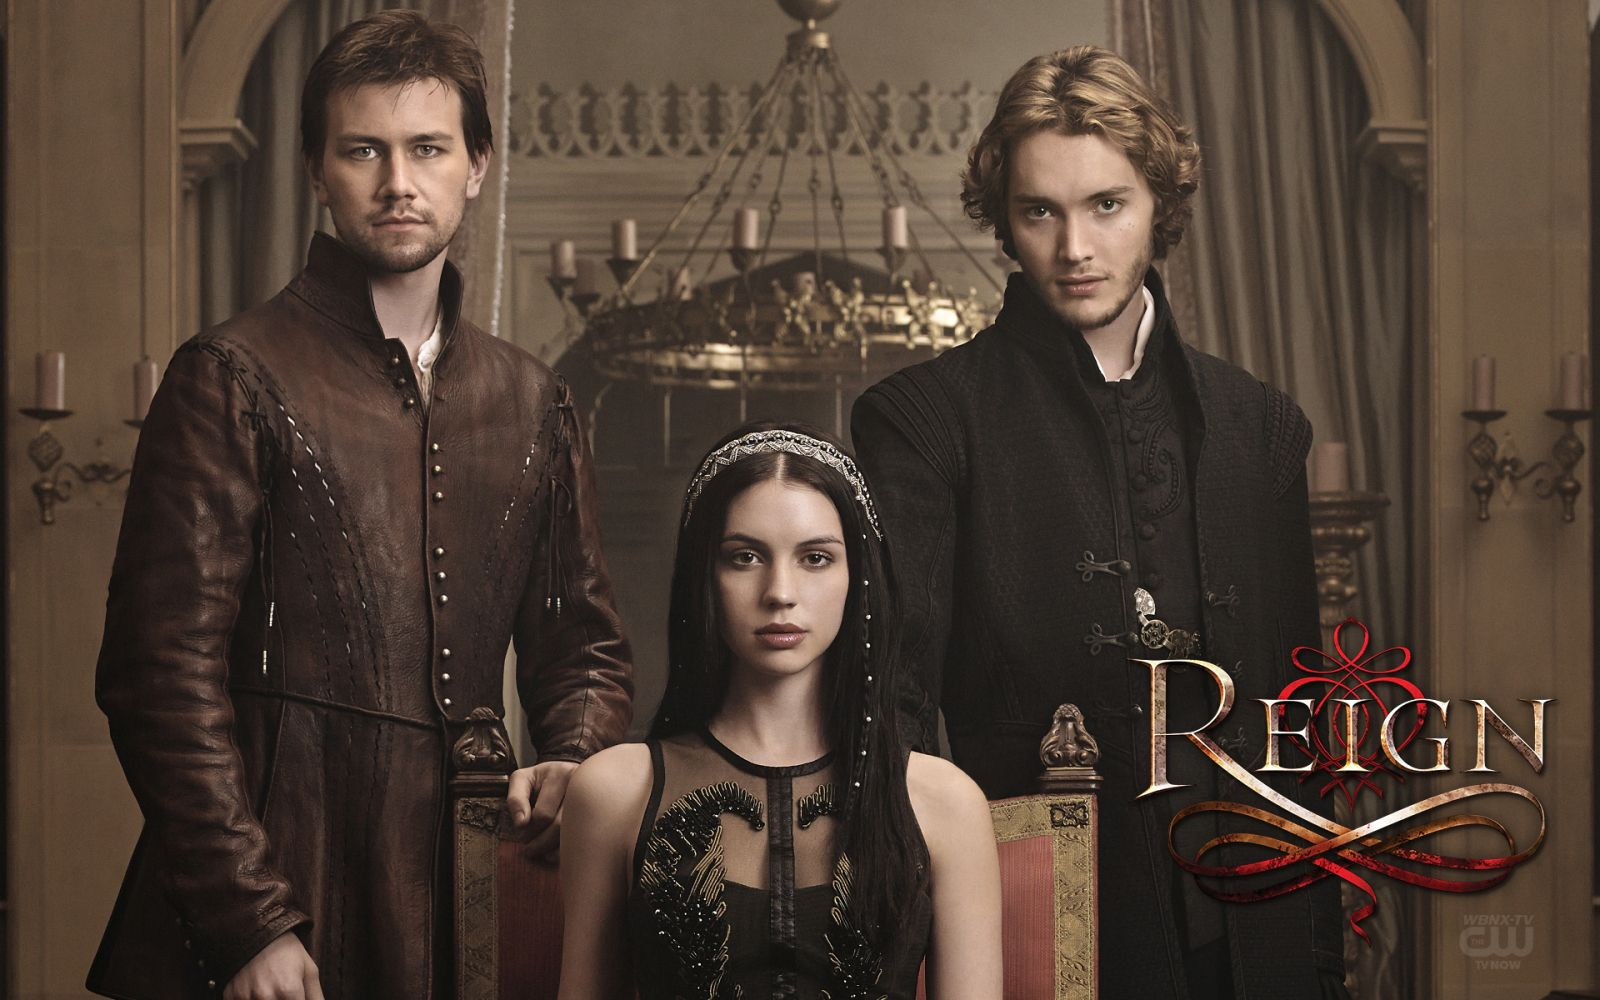 Pin By Sydney On Reign With Images Reign Tv Show Reign Cast